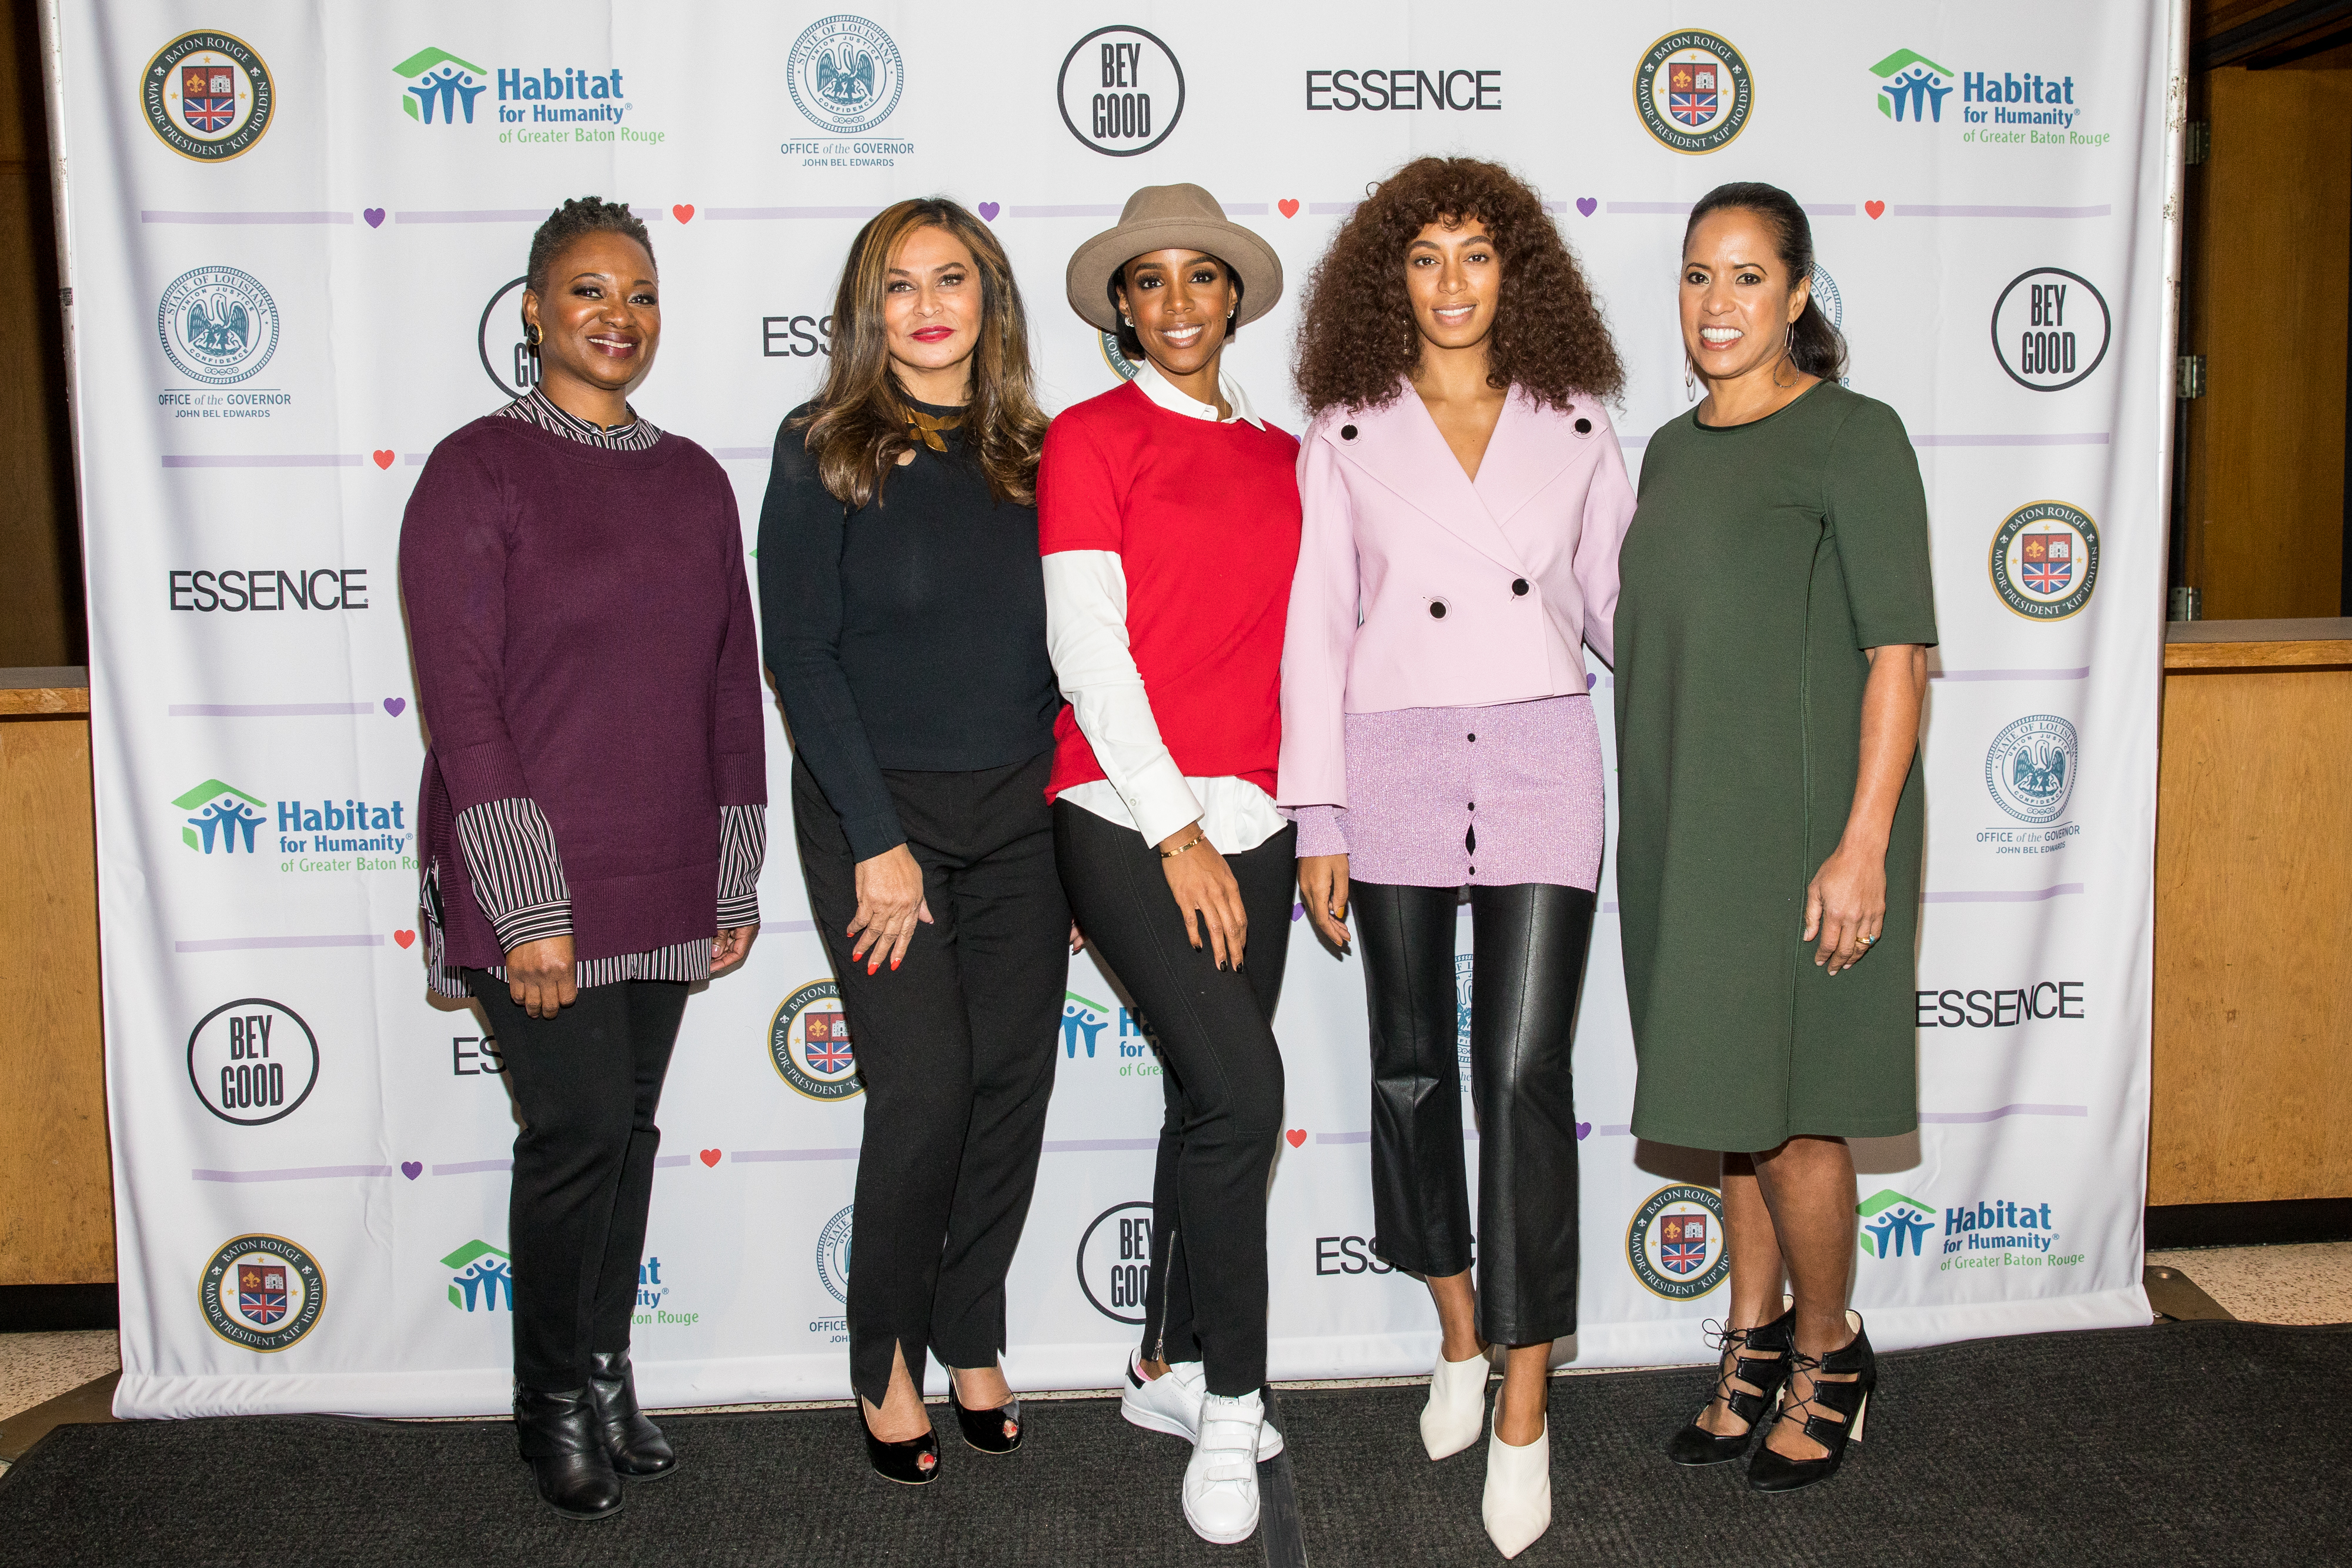 BATON ROUGE, LA - NOVEMBER 20: (L-R) Vanessa De Luca, Tina Knowles-Lawson, Kelly Rowland, Solange Knowles and Michelle Ebanks attend Love On Louisiana: An Essence hometown heroes tribute celebrating the resilience of the Baton Rouge community with Tina Knowles-Lawson, Solange Knowles and Kelly Rowland at the Baton Rouge River Center on November 20, 2016 in Baton Rouge, Louisiana.  (Photo by Josh Brasted/Getty Images for Essence)